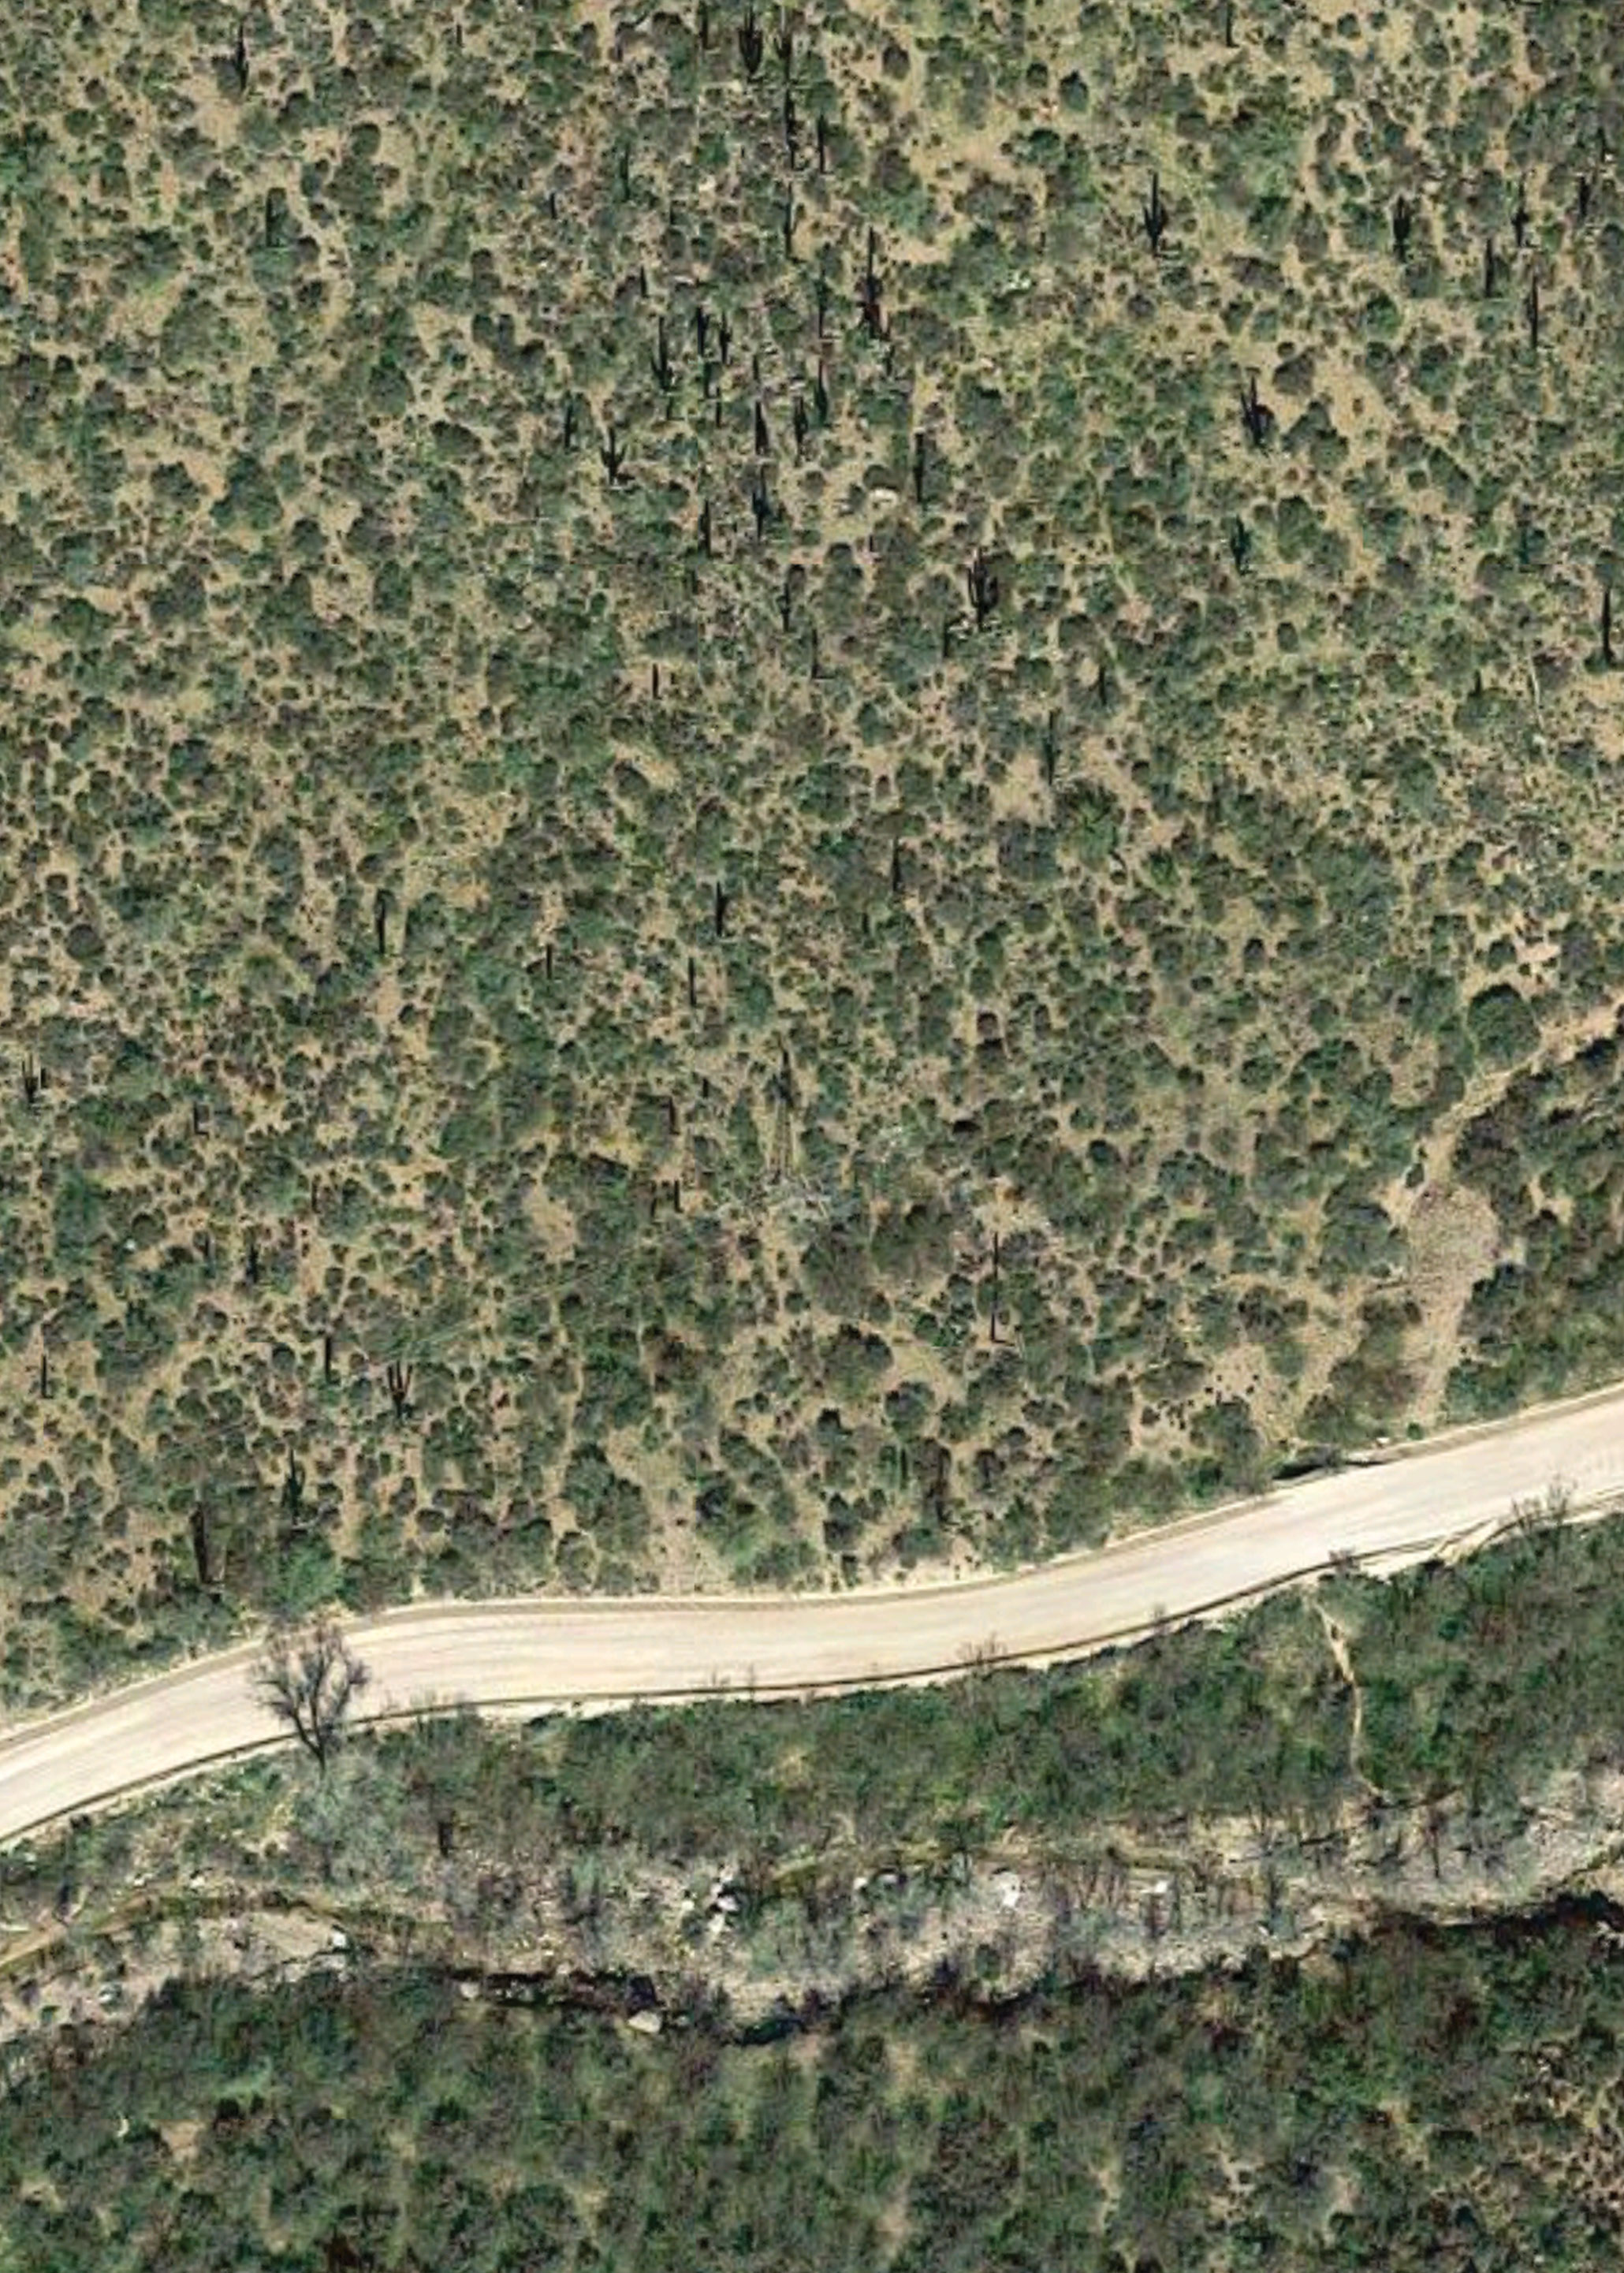 Satellite view of saguaros along Arizona State Route 88, imagery copyright Google 2016